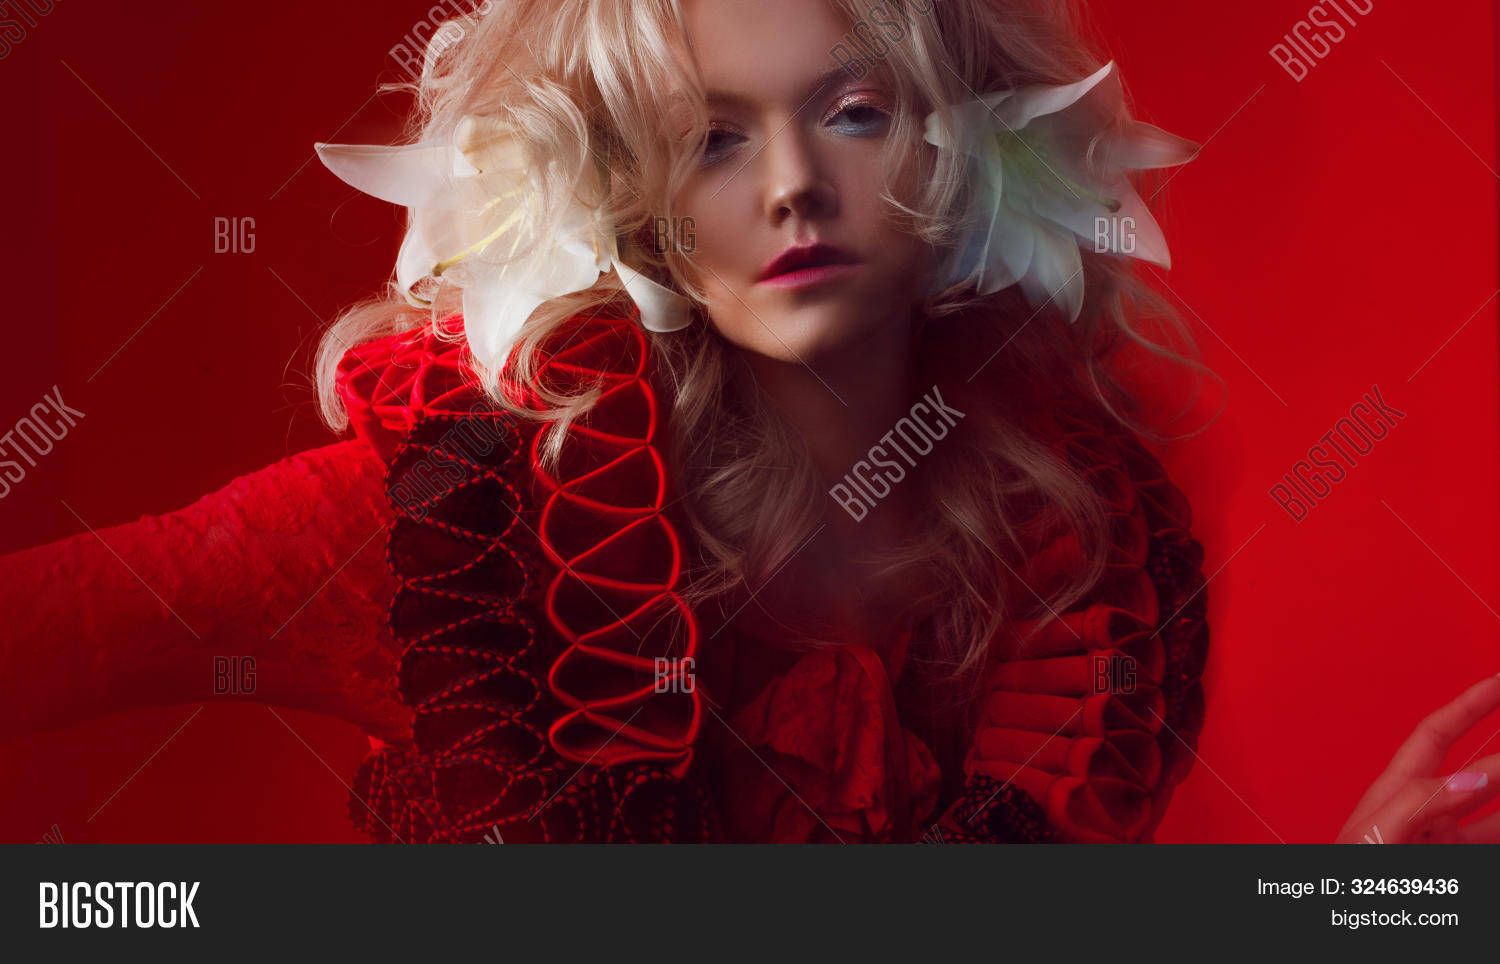 Shades Red Portrait Image Photo Free Trial Bigstock